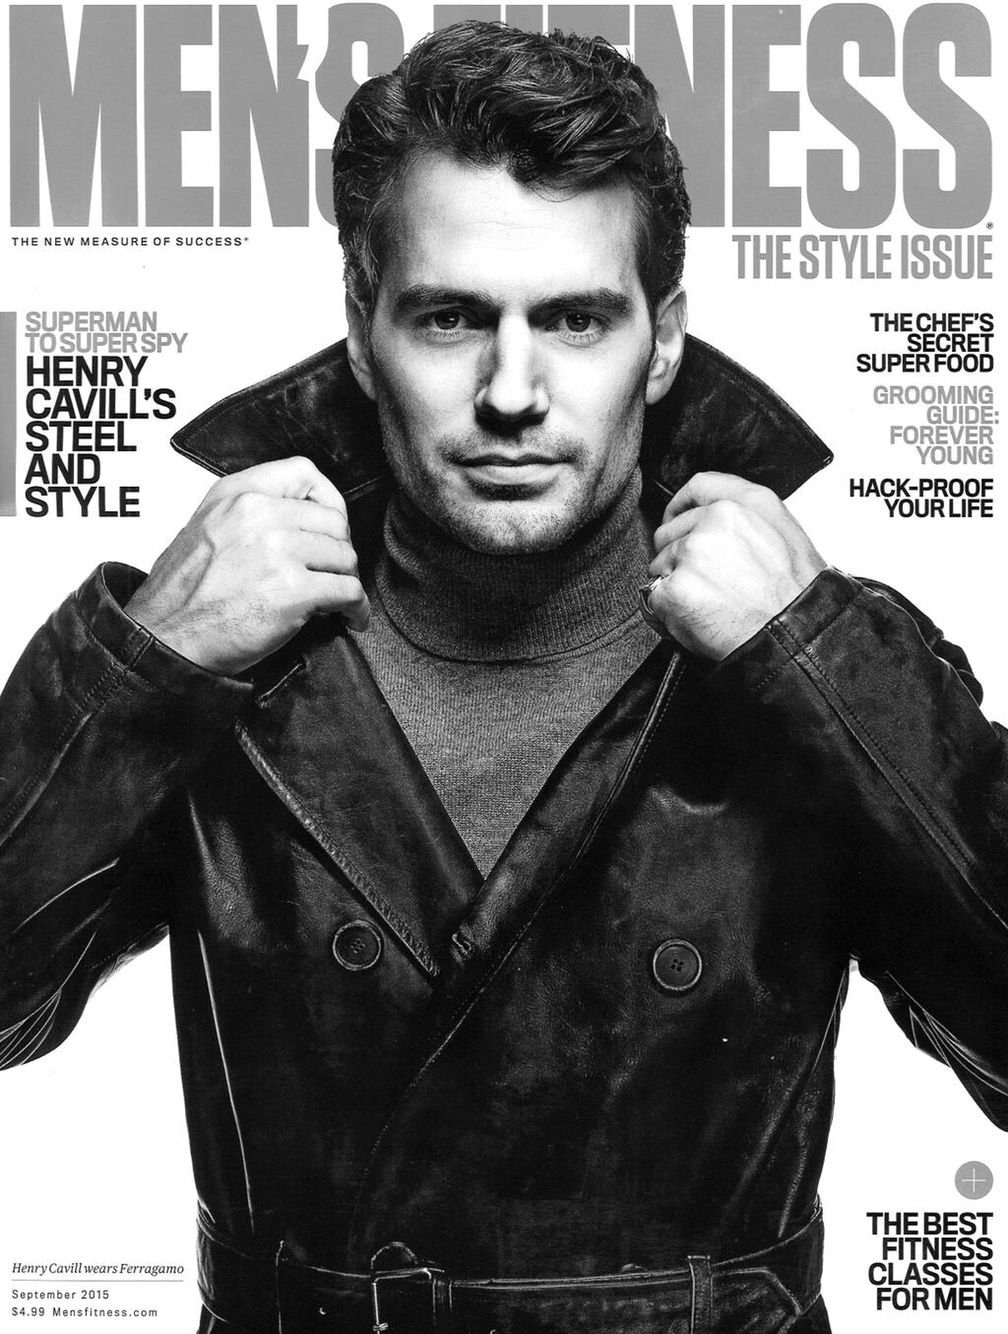 "#Dead #ThankYouHenry ""@Ferragamo: Man of Steel 